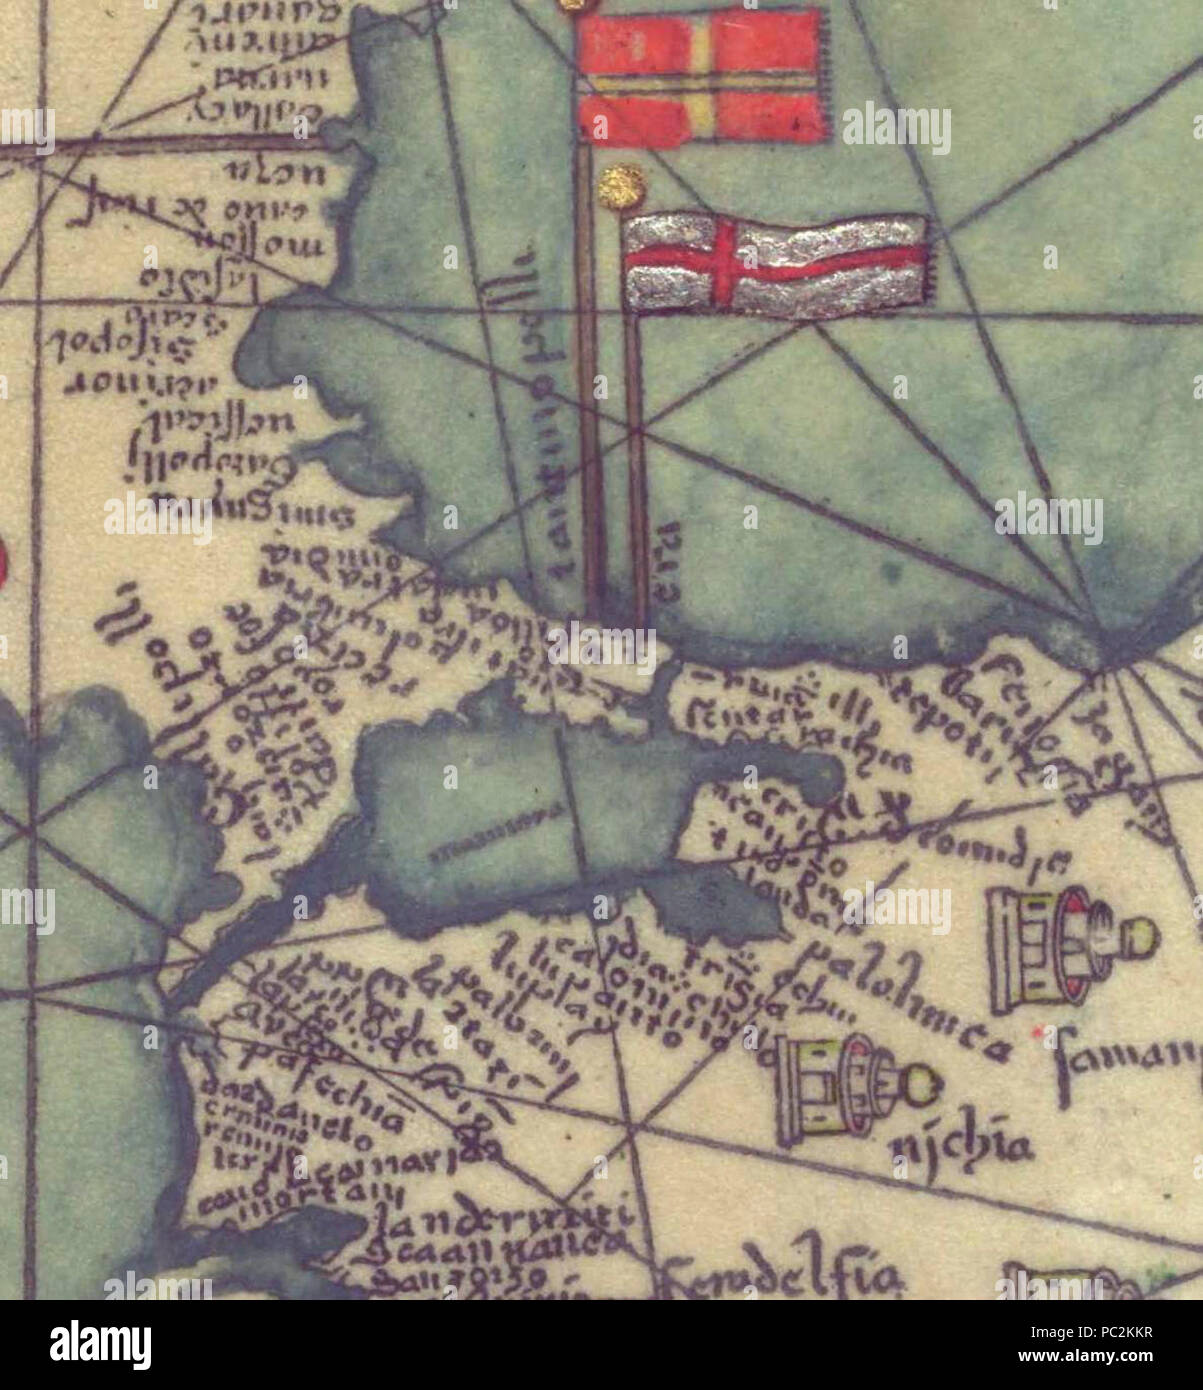 Abraham and Jehuda Cresques Catalan Atlas. Eastern Europe view from the south.K. Stock Photo